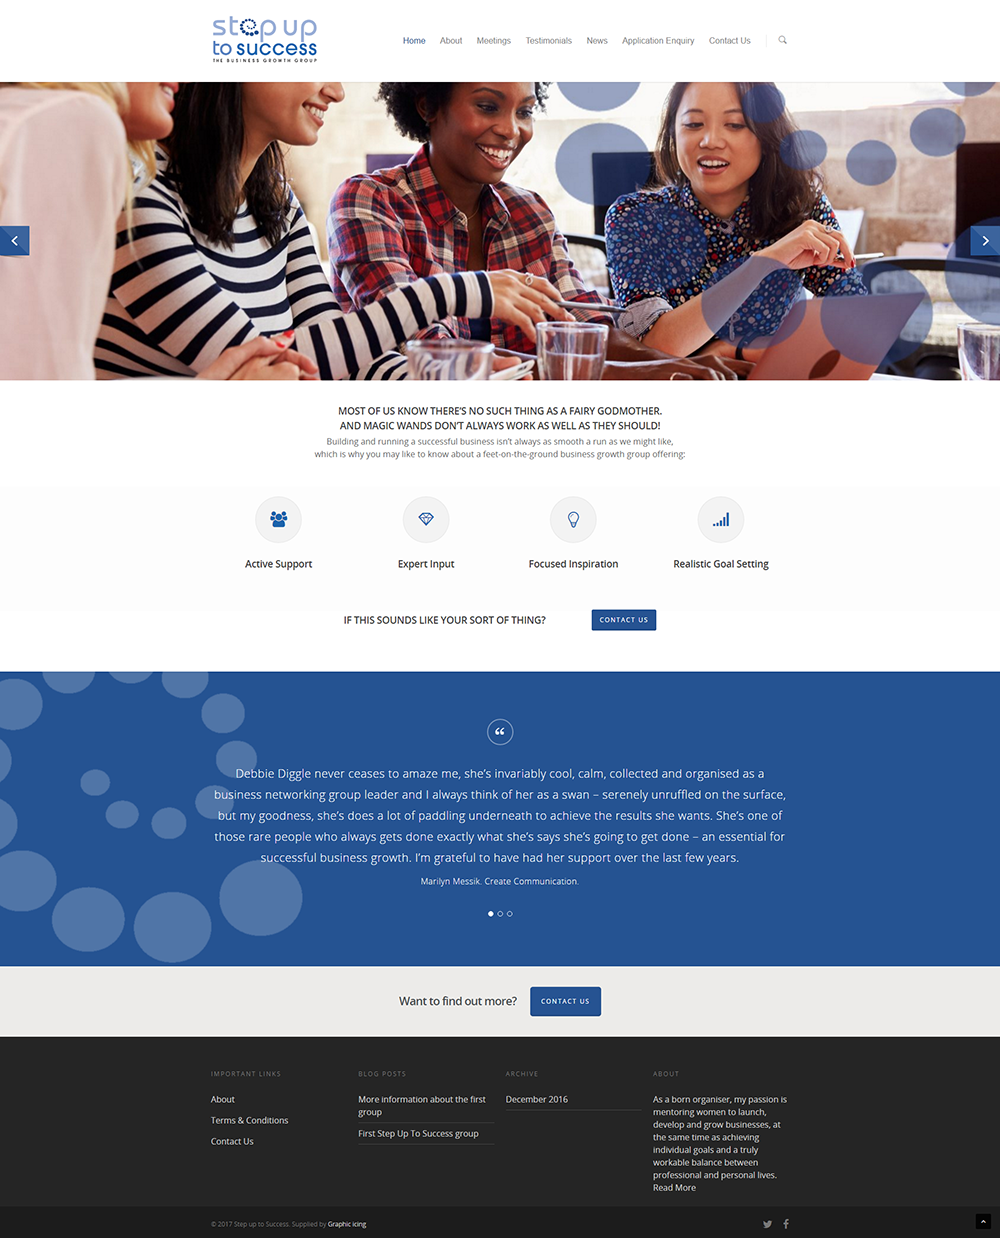 Step up to success website design